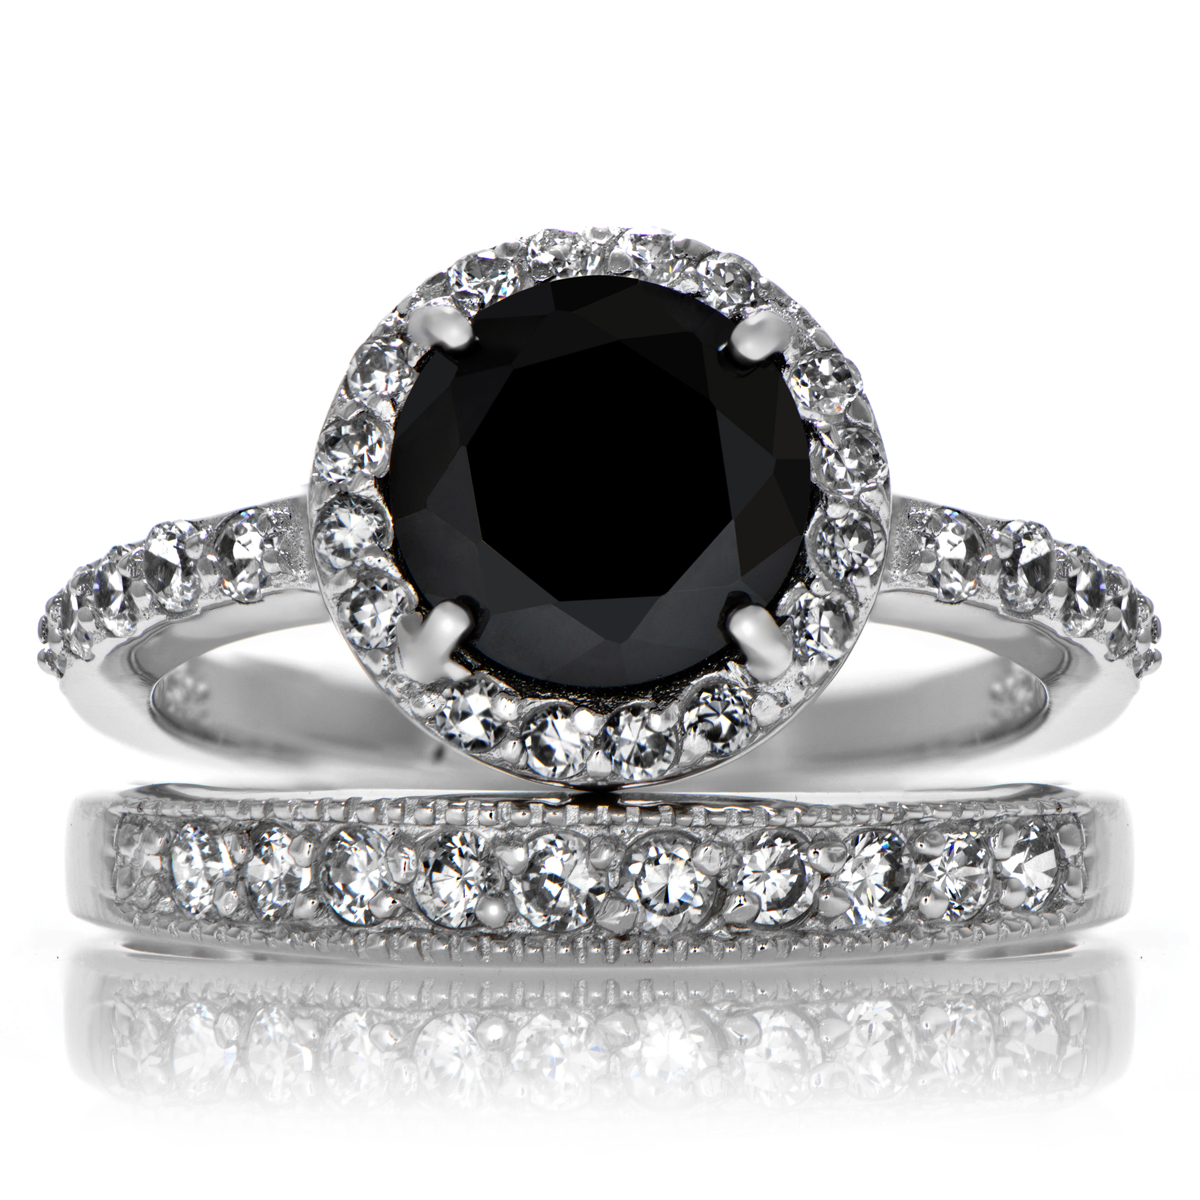 carries black cz ring set roll off image to close zoom window - Black Diamond Wedding Ring Set